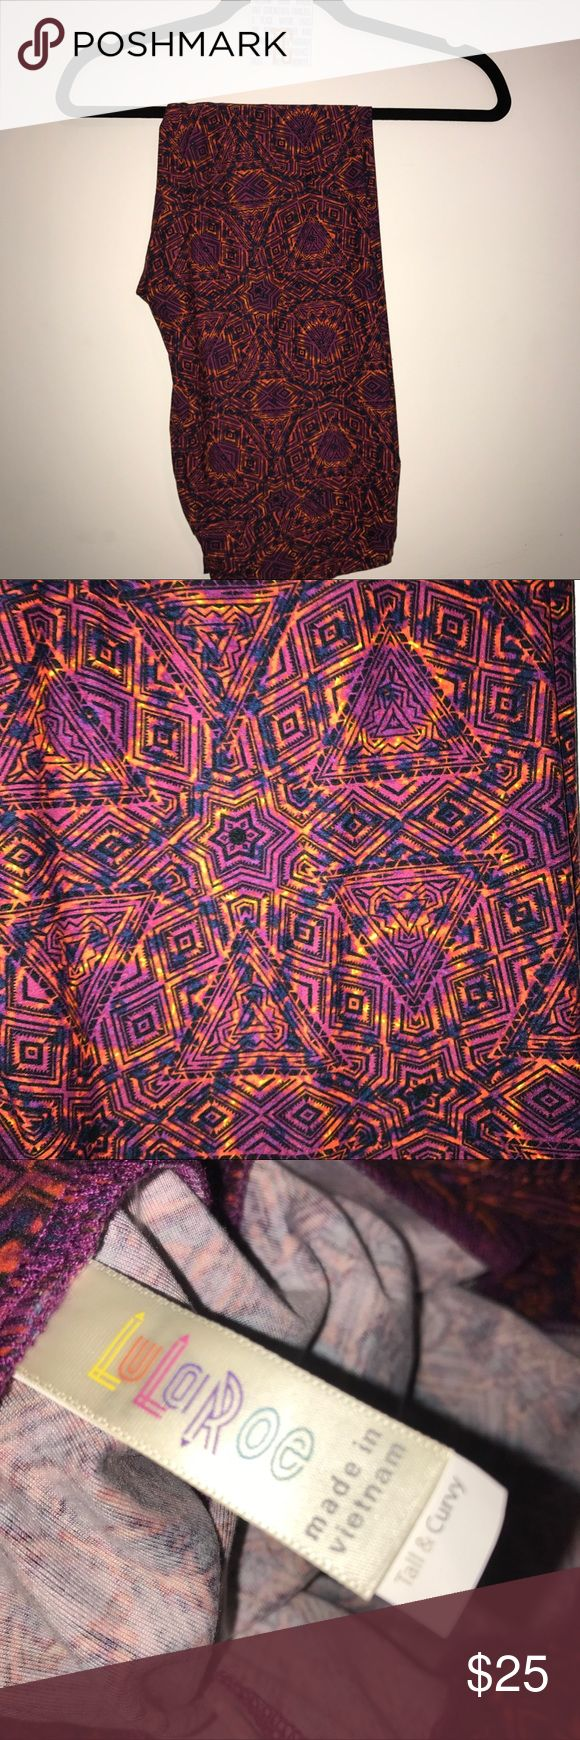 NWT lularoe leggings TC Purple w/geometric pattern BNWT lularoe leggings TC Purple Background w/ purple pink orange yellow geometric patterns including STARS. Gorgeous! TC fits 12-22/24 but choose 1x below. Ask me if you have any questions! LuLaRoe Pants Leggings